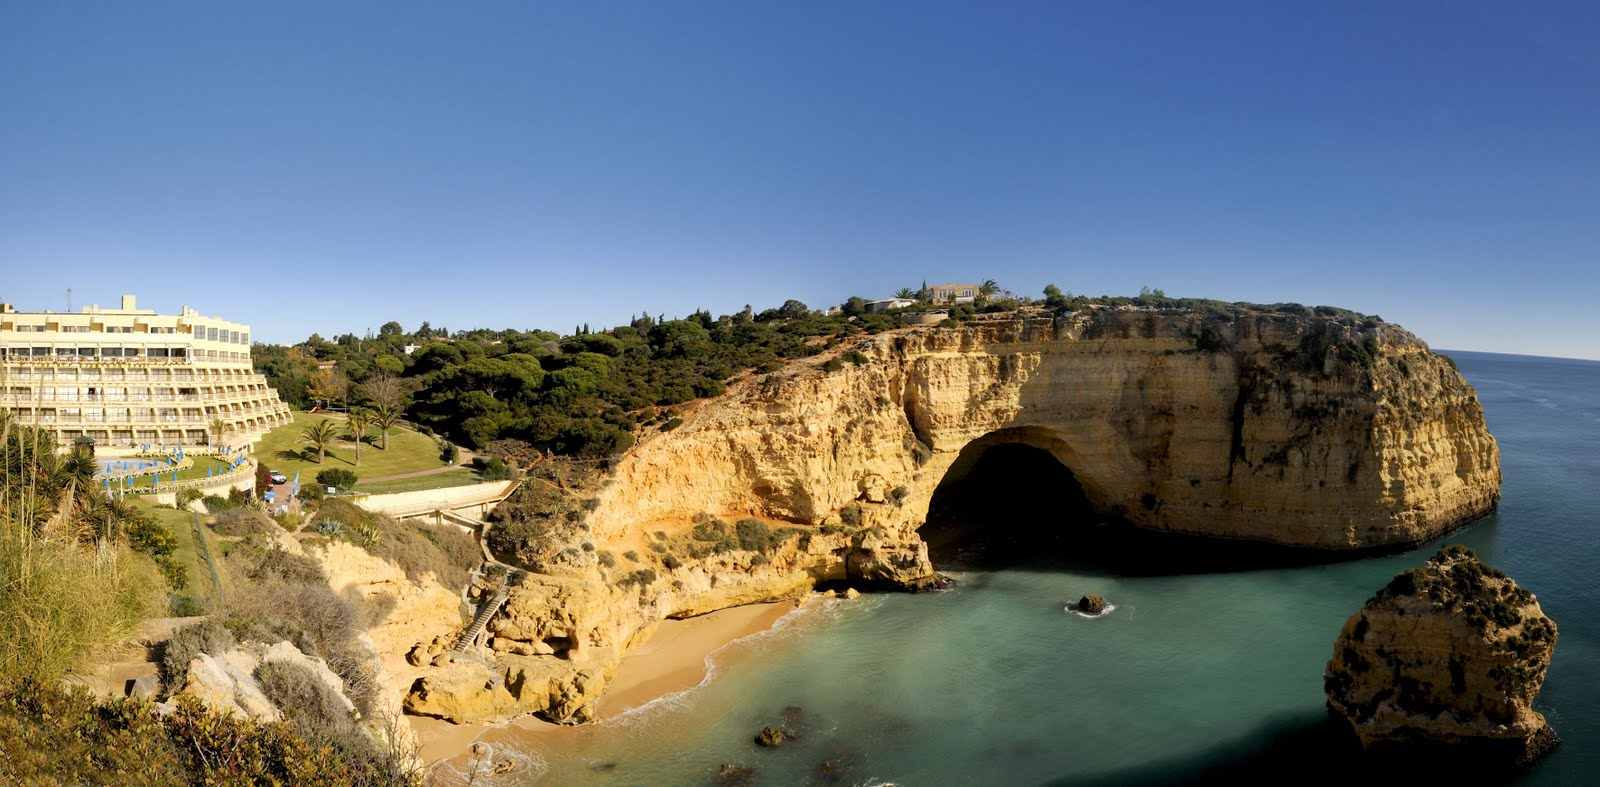 Hotel Tivoli Carvoeiro Algarve Booking Faro Airport Transfers To Tivoli Carvoeiro Faro Airport